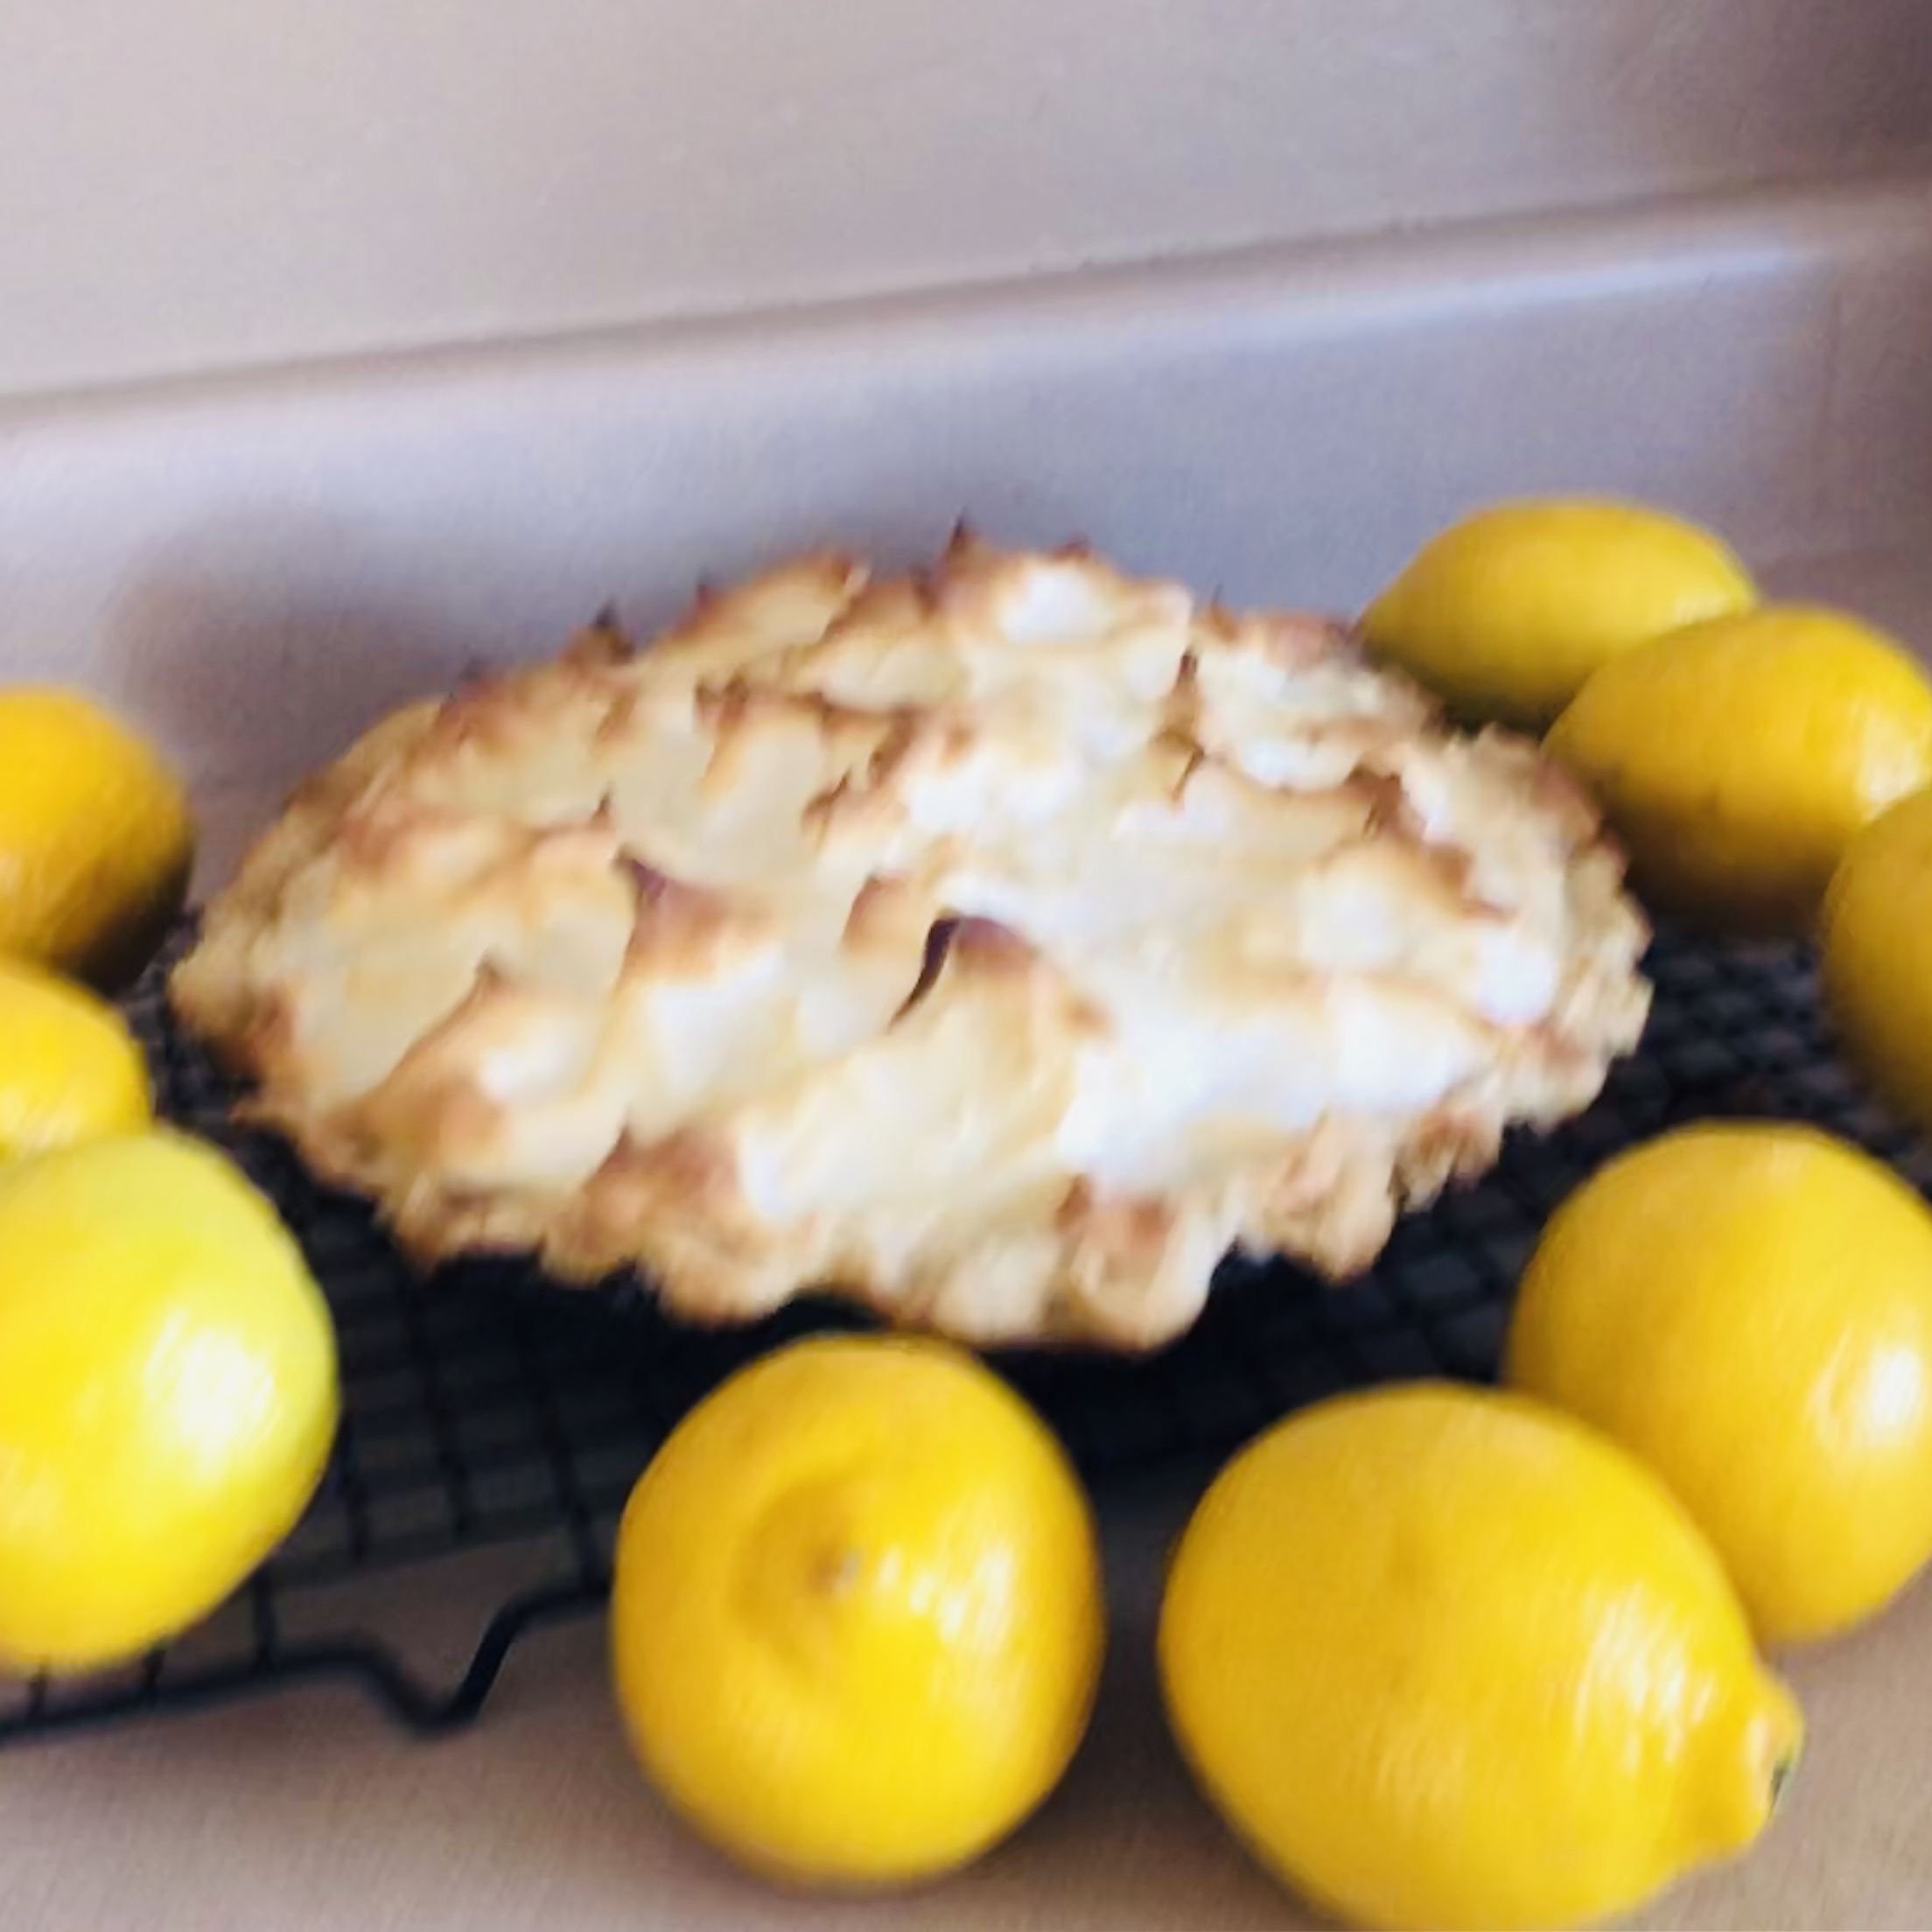 Agave-Sweetened Lemon Meringue Pie Diane